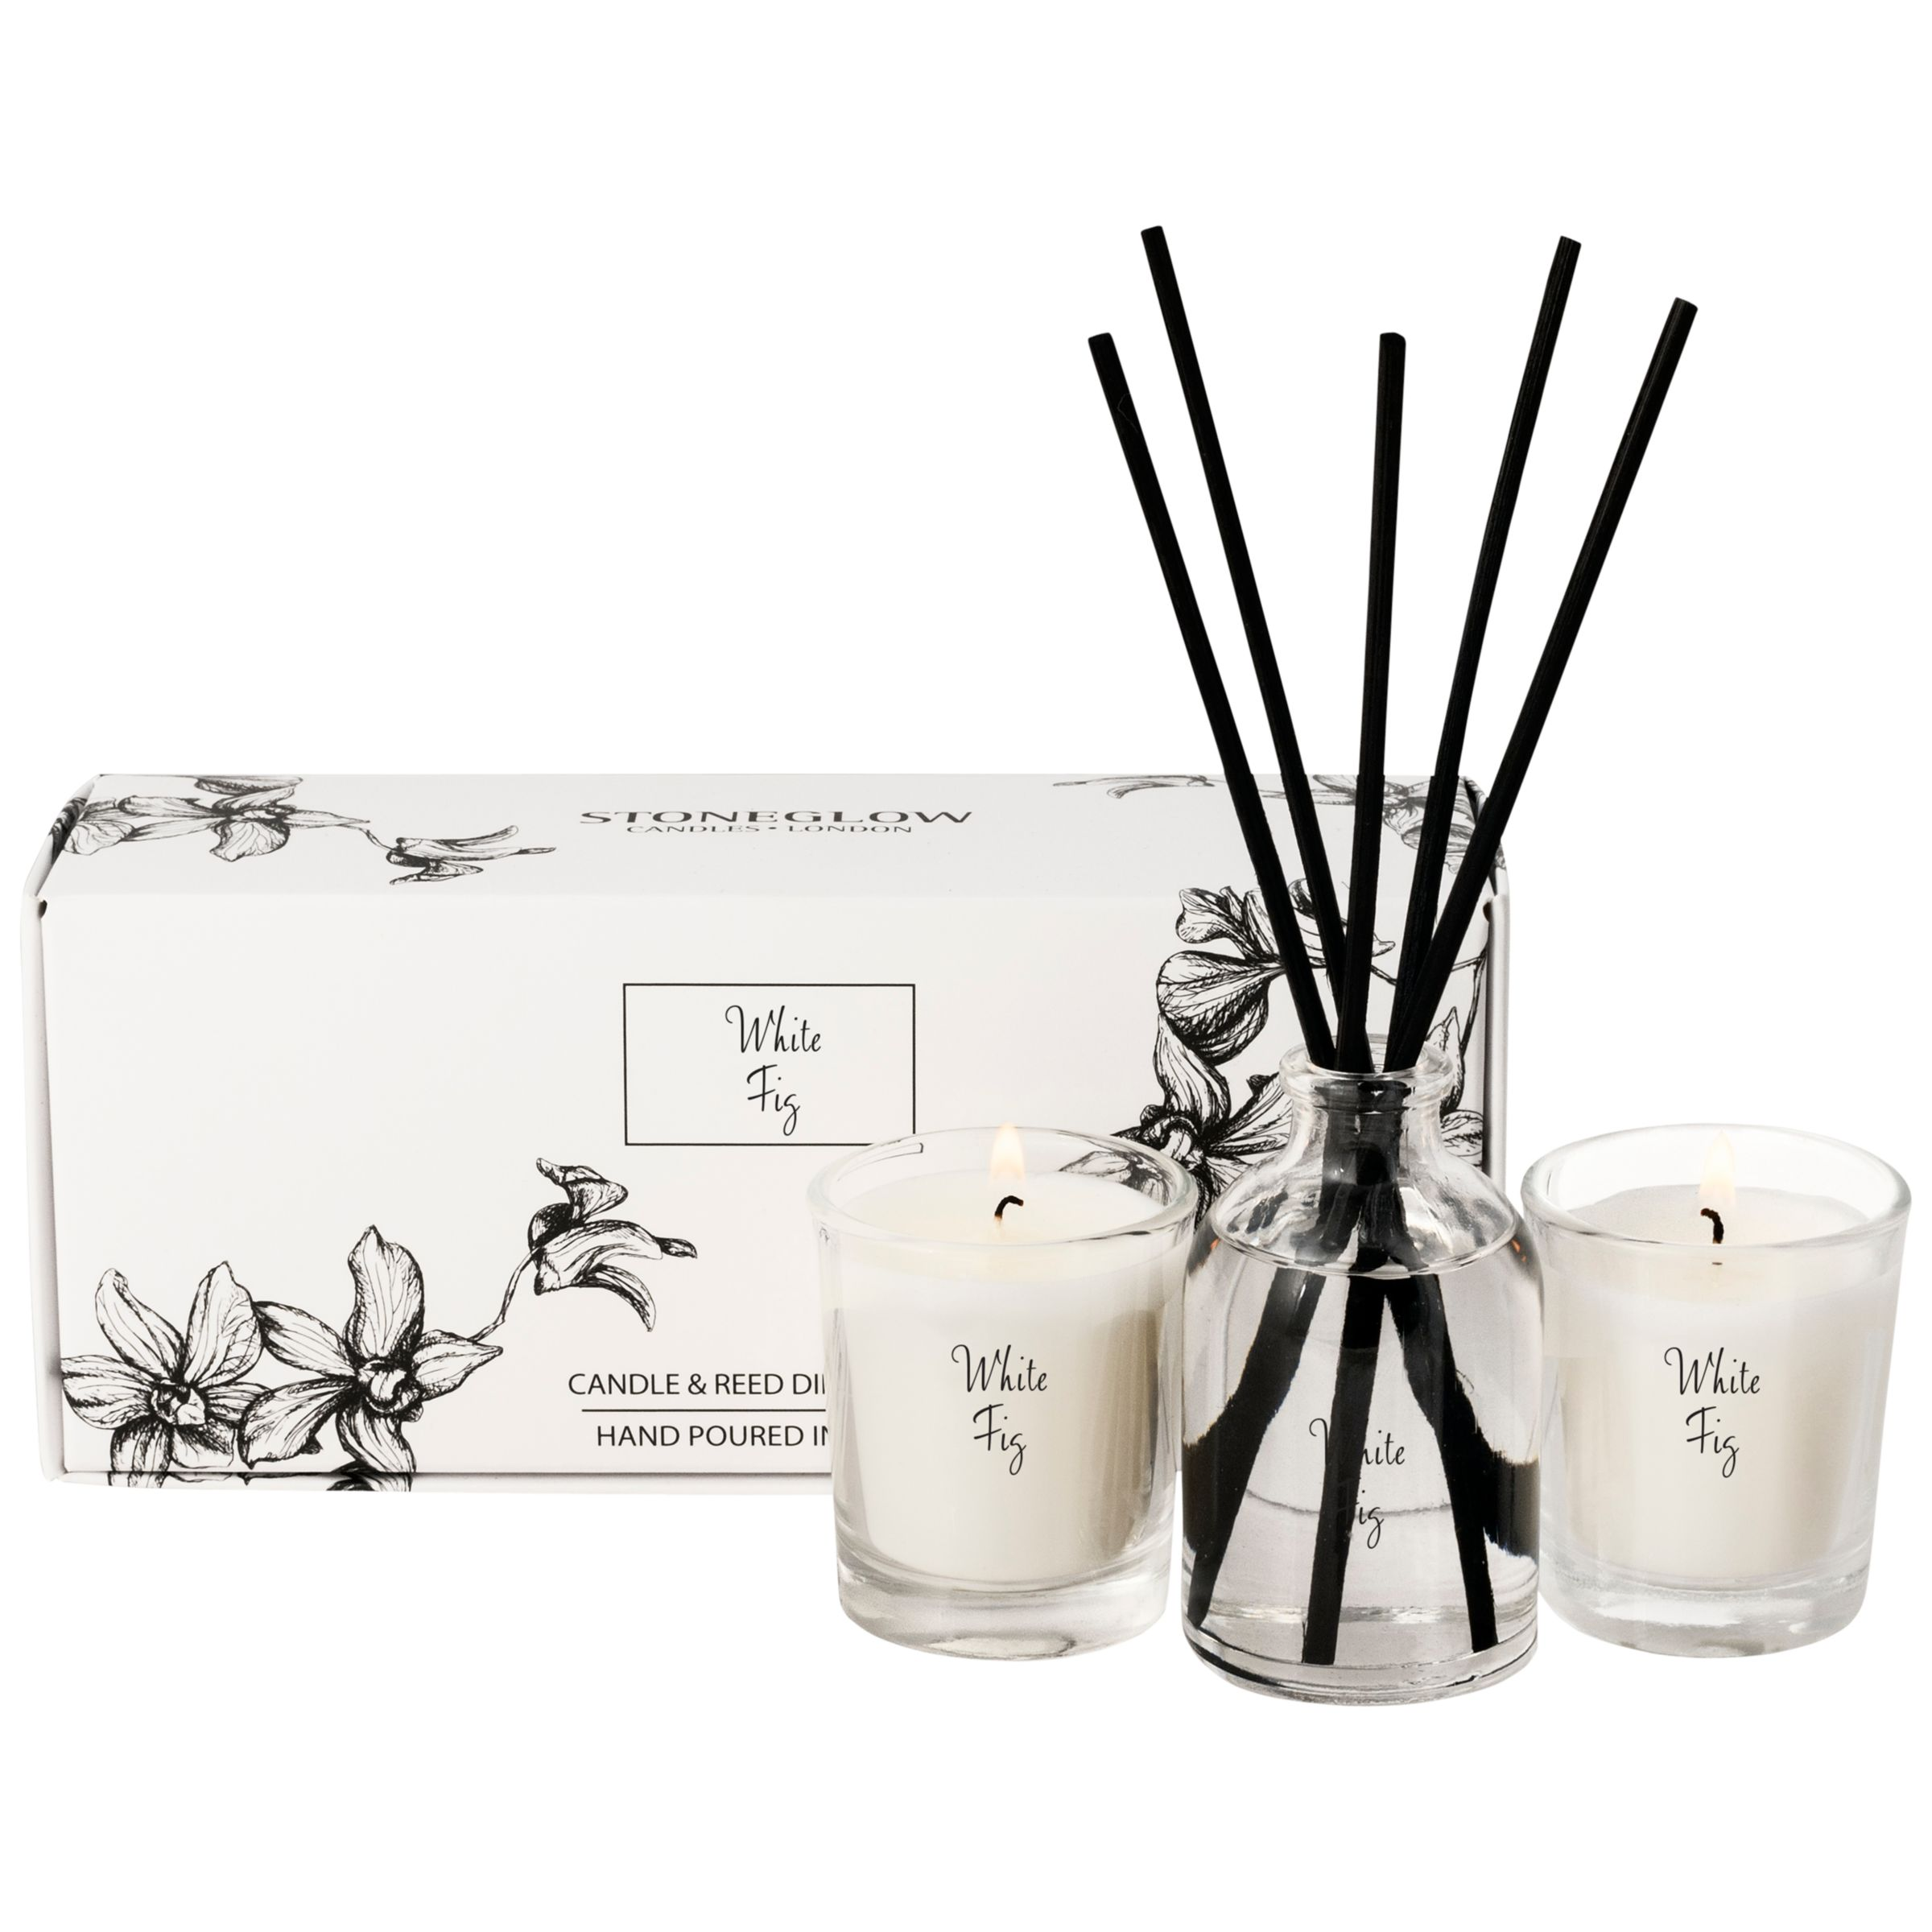 Stoneglow Stoneglow Scented Candles and Diffuser Gift Set, New White Fig